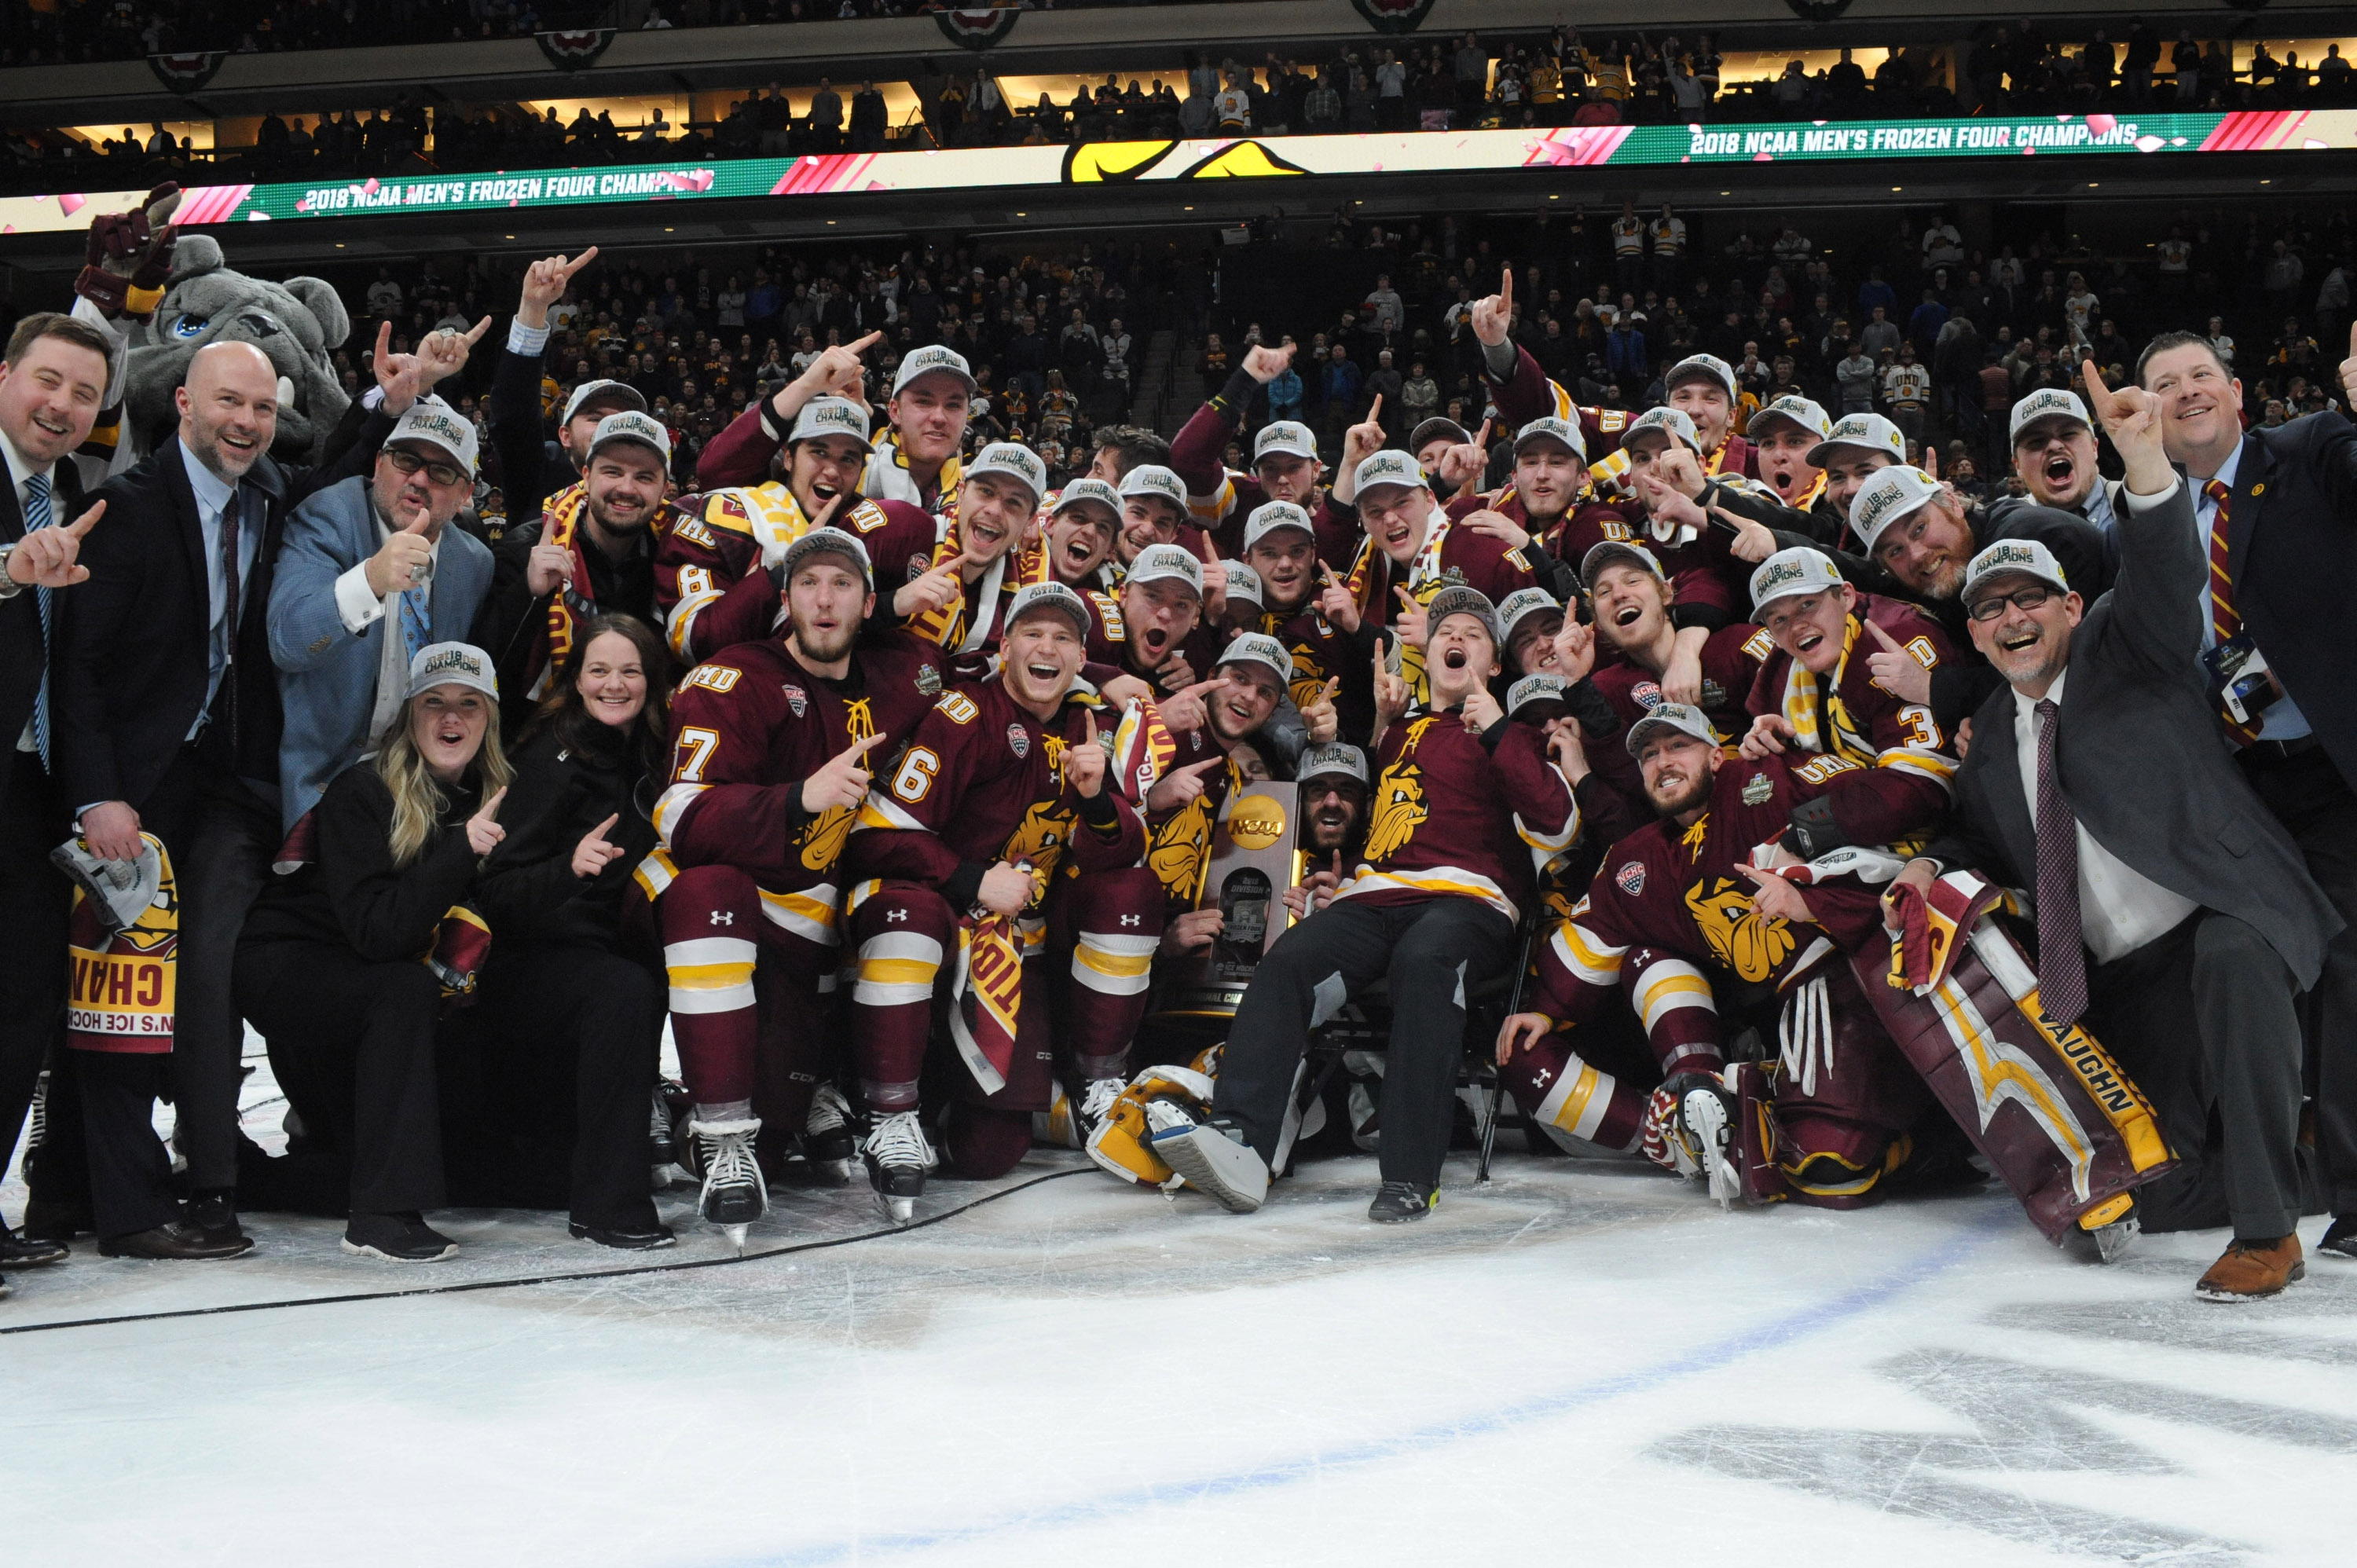 Minnesota Duluth wins the 2018 NCAA title.